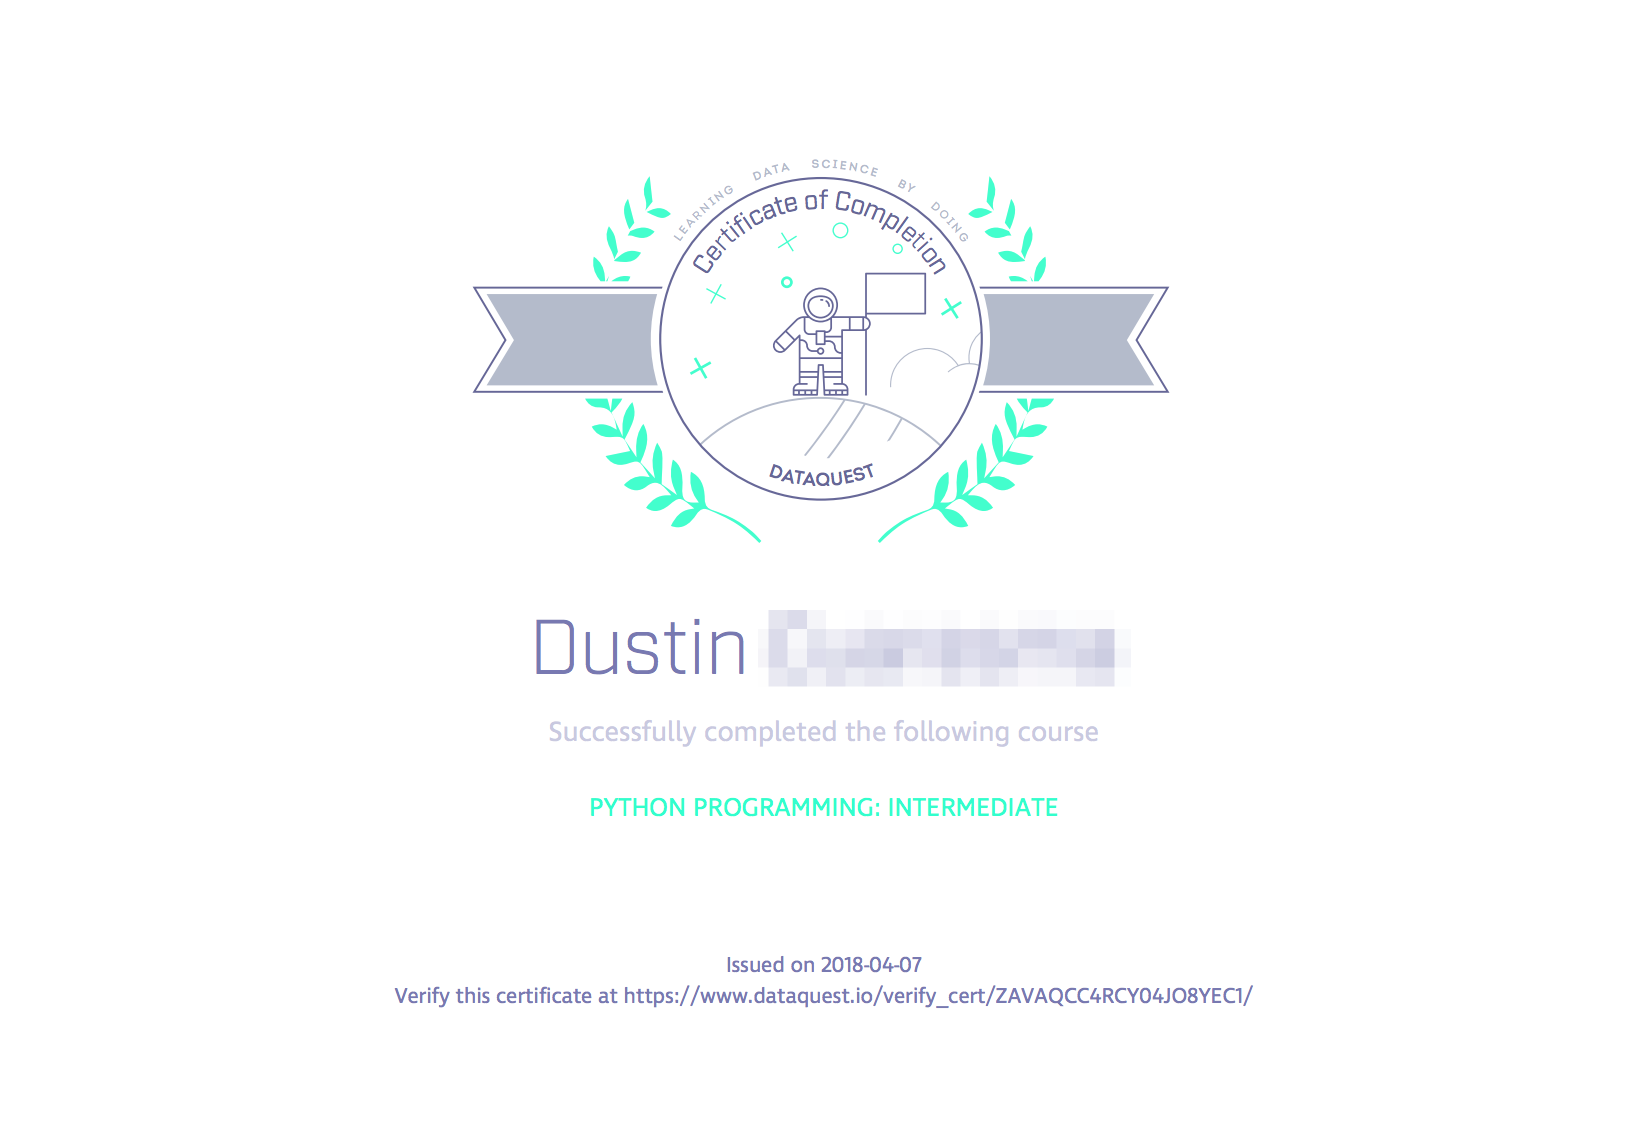 Do you have certificates of completion? - Dataquest